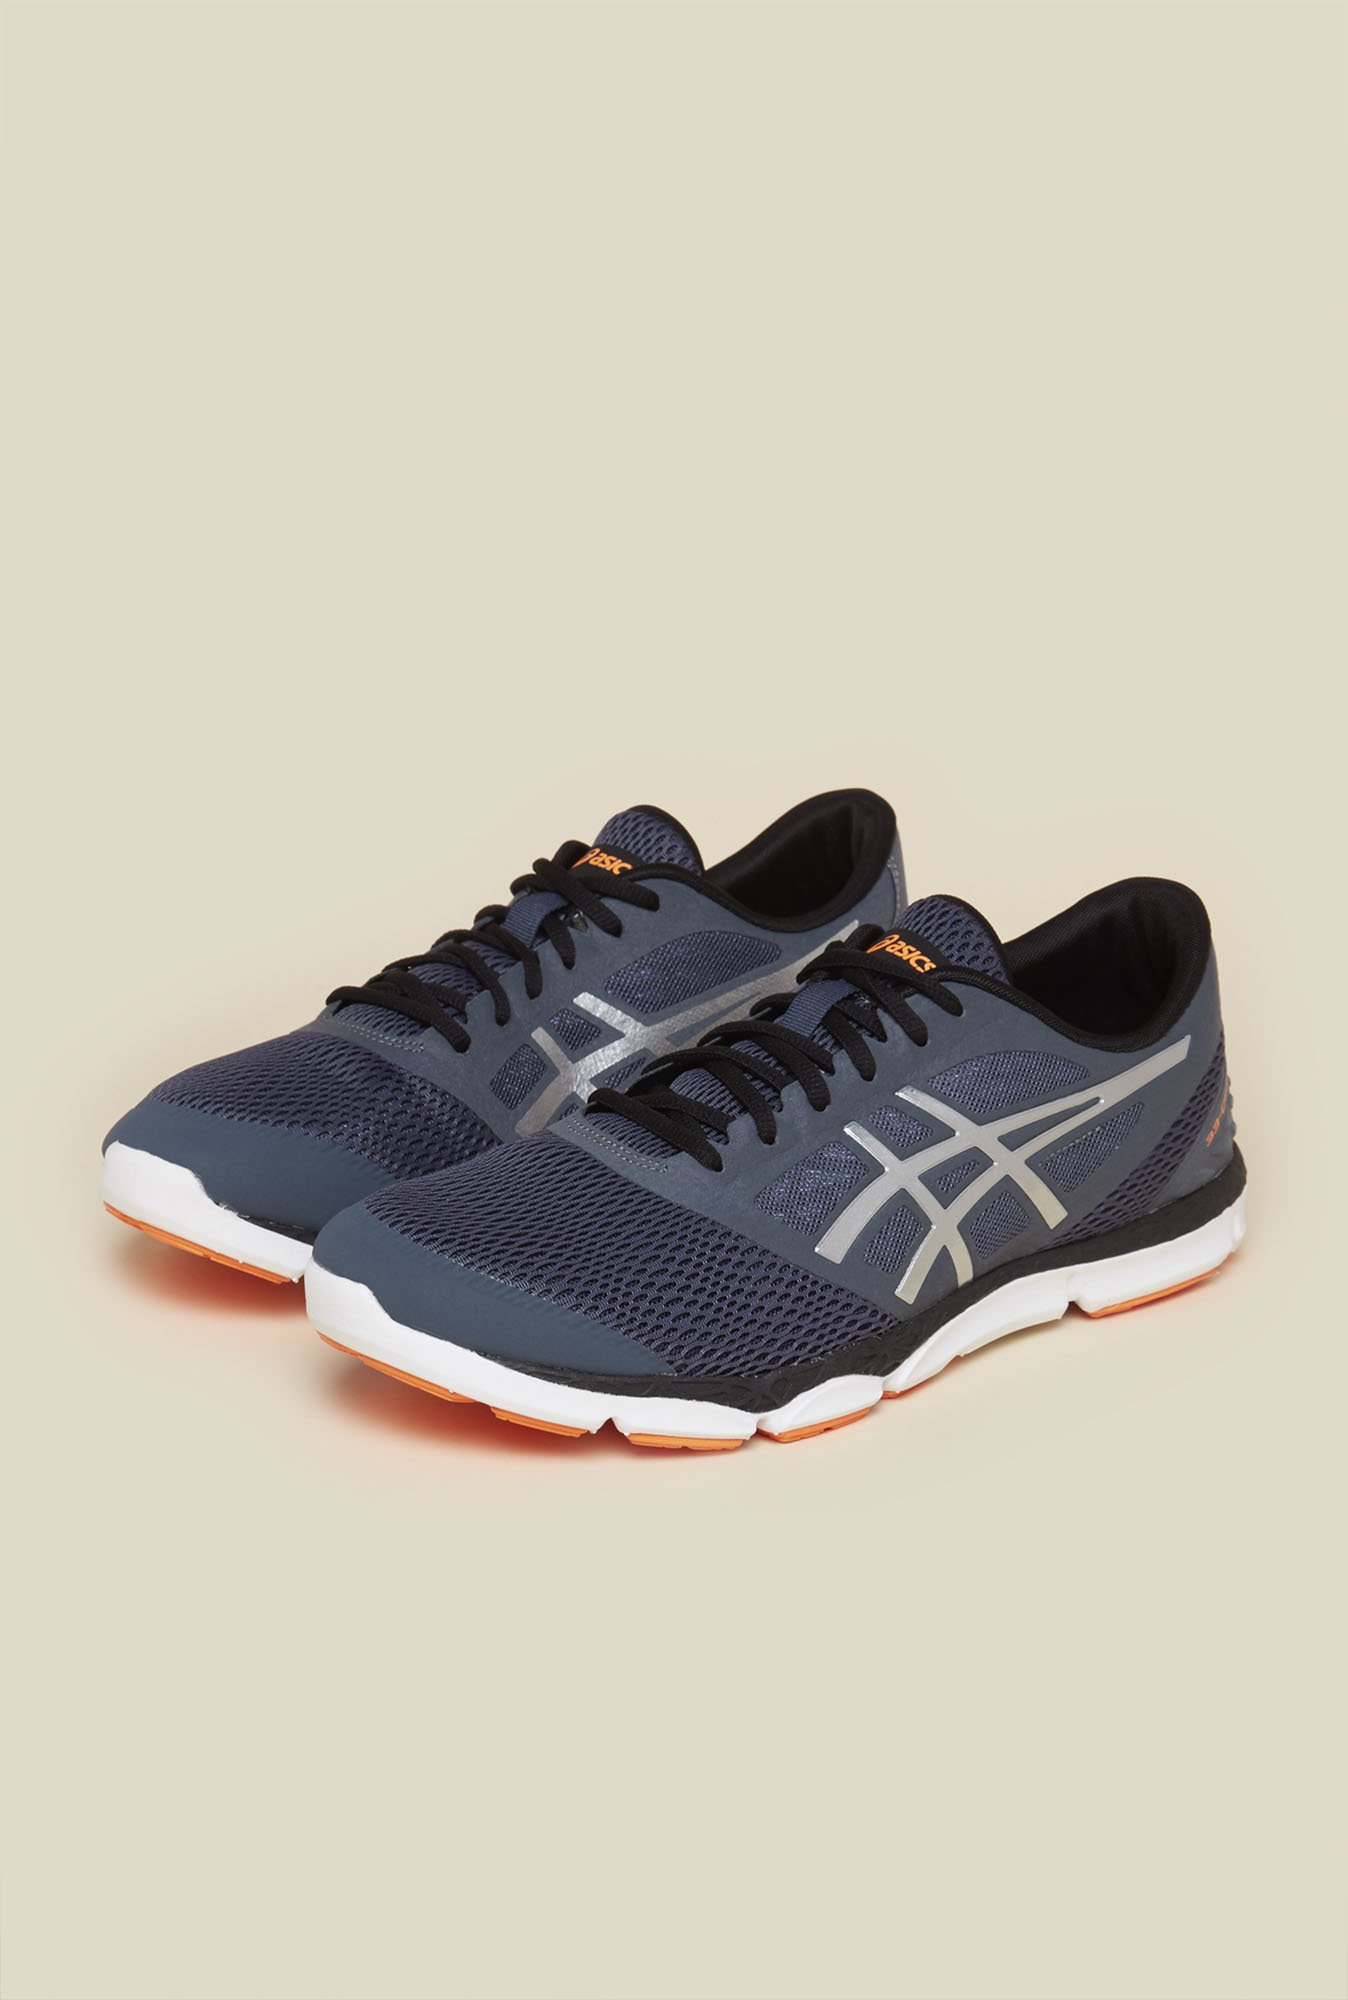 Asics 33Dfa 2 Mens Running Shoes